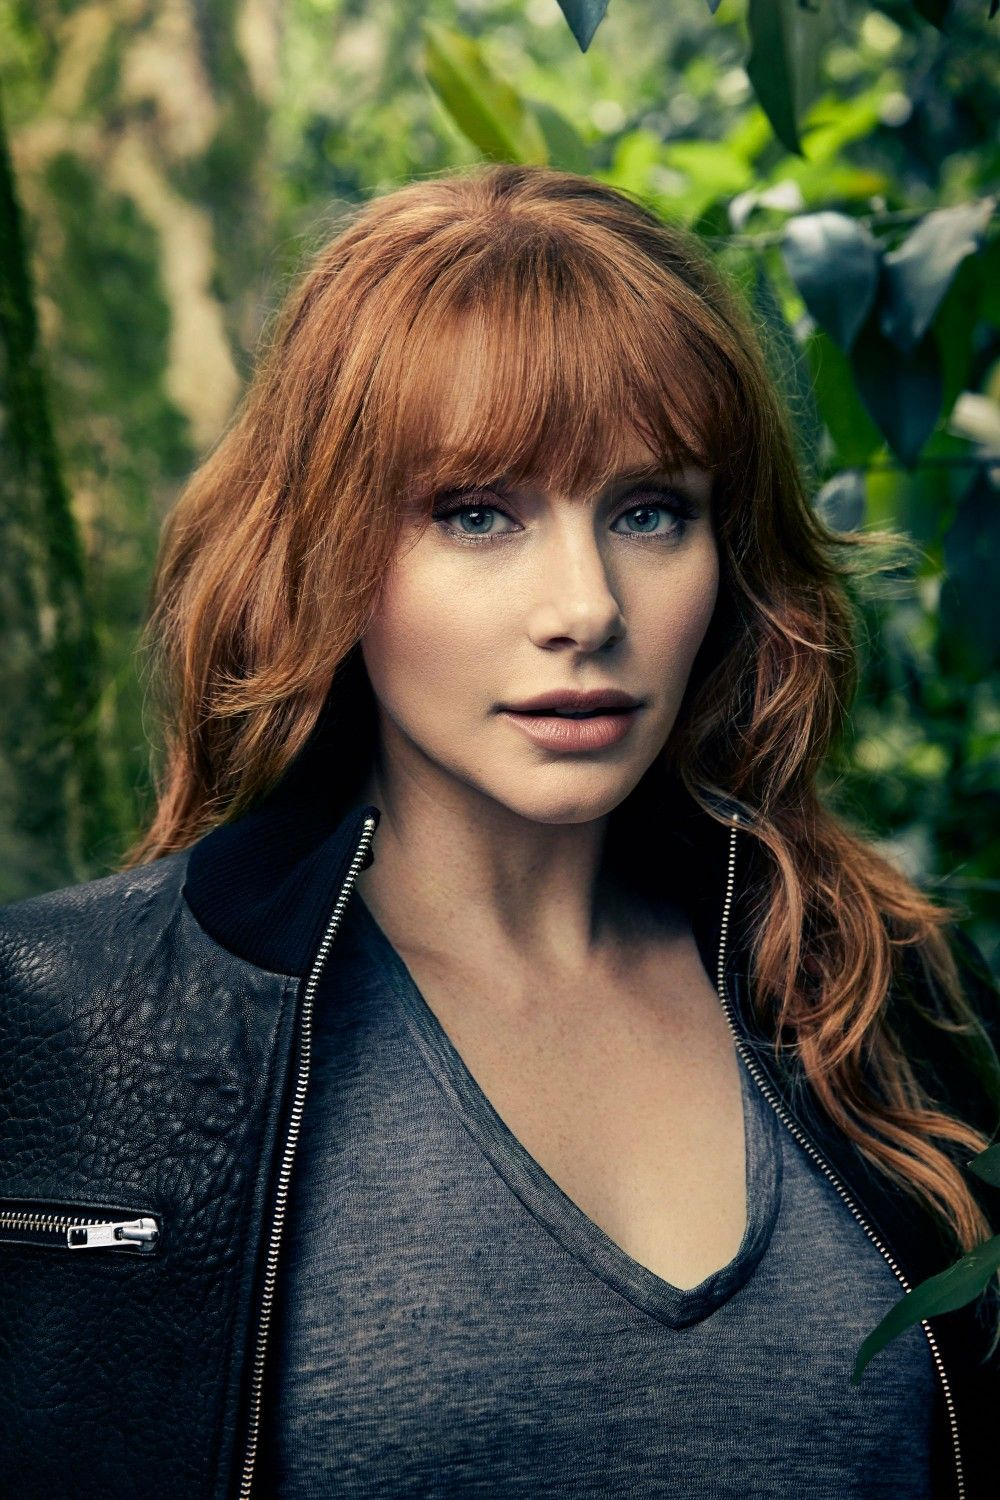 2019 Bryce Dallas Howard naked (52 foto and video), Pussy, Hot, Feet, underwear 2017